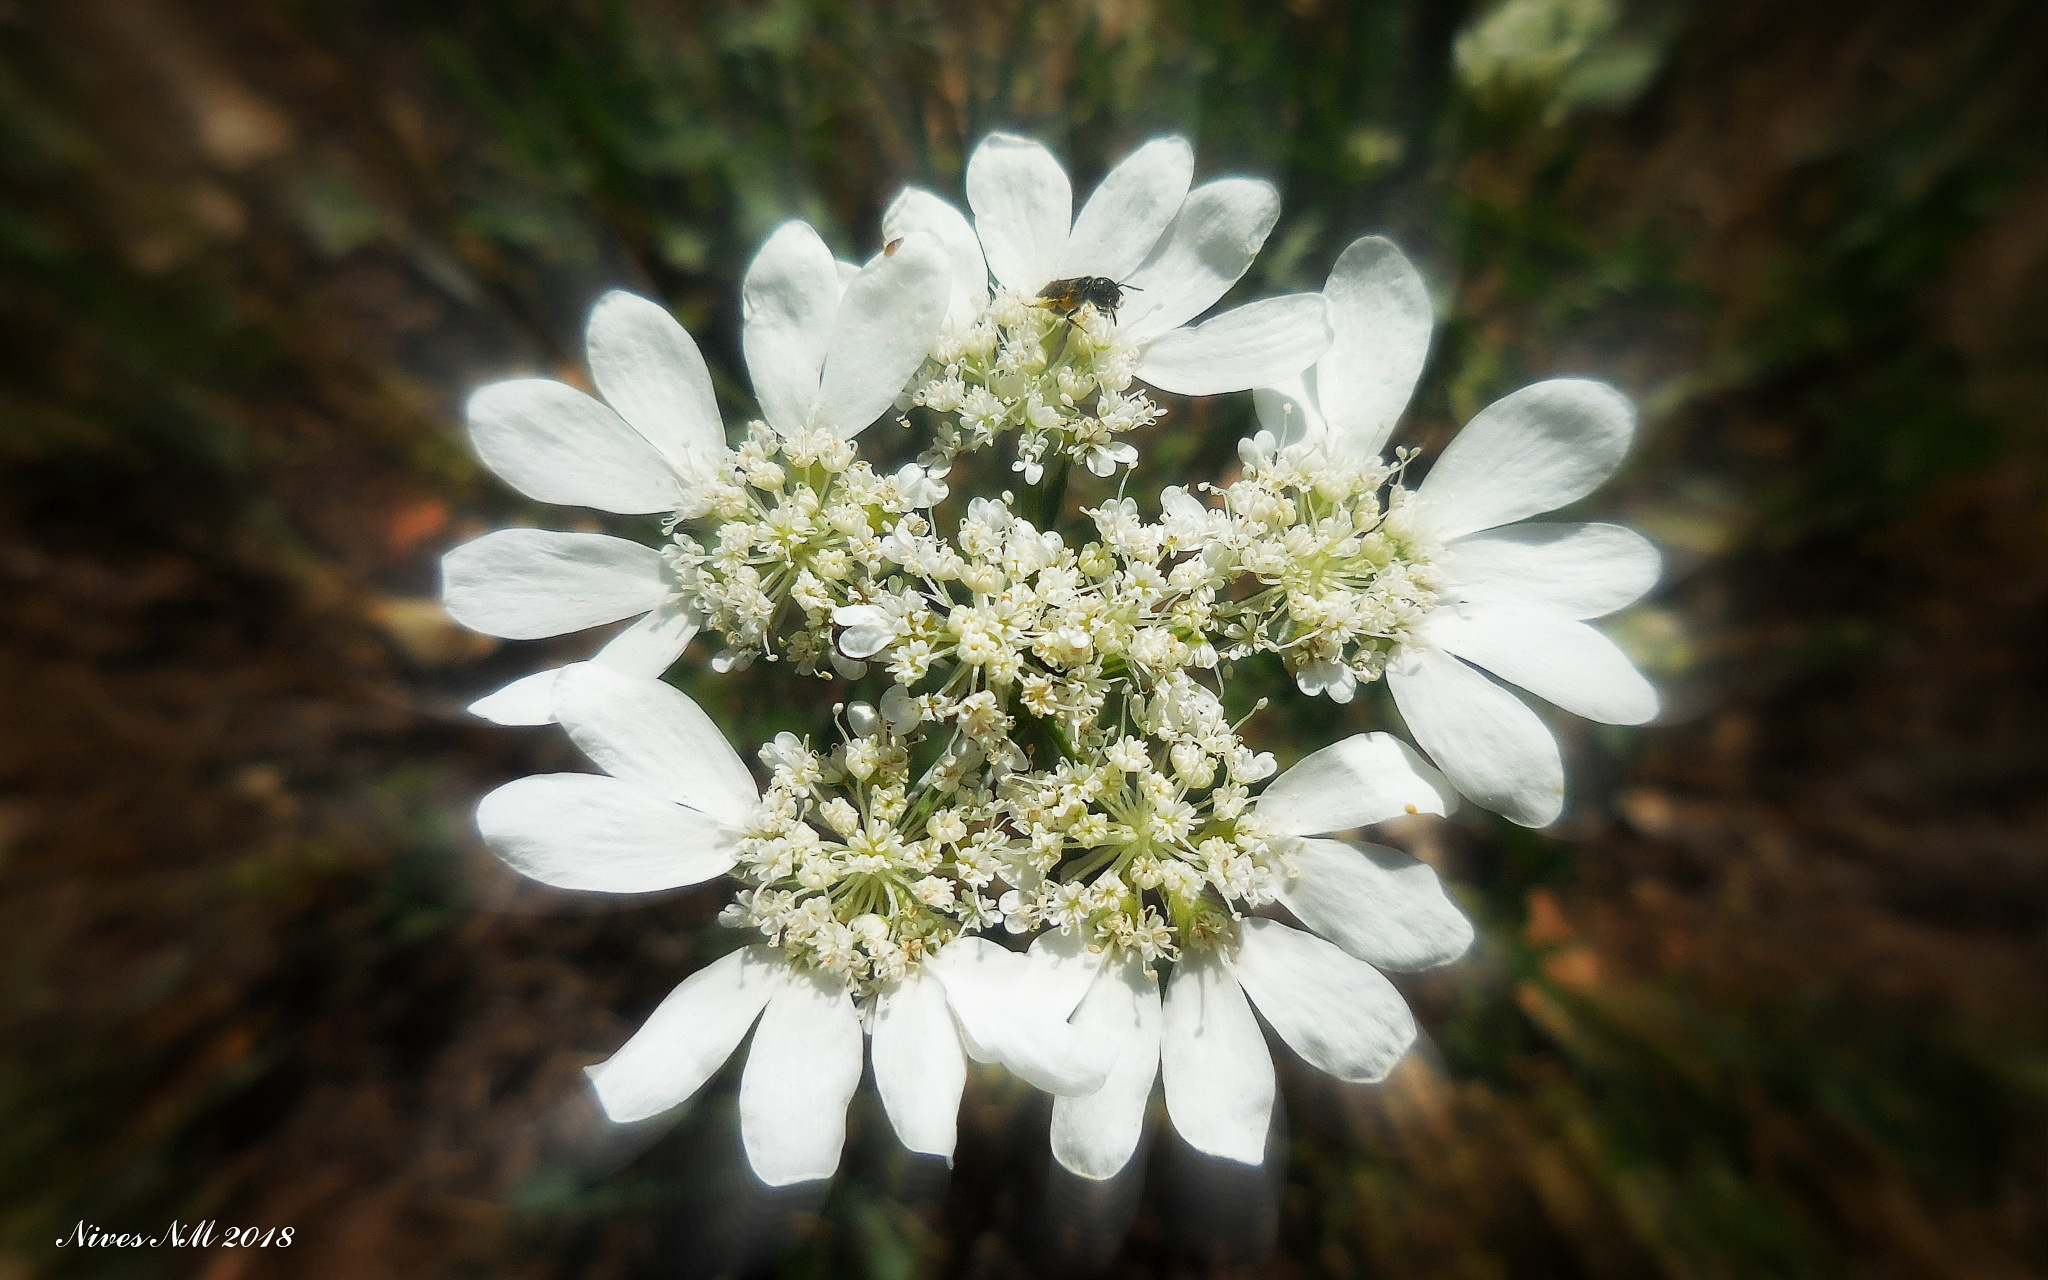 flower from nature by nives.n.marusic